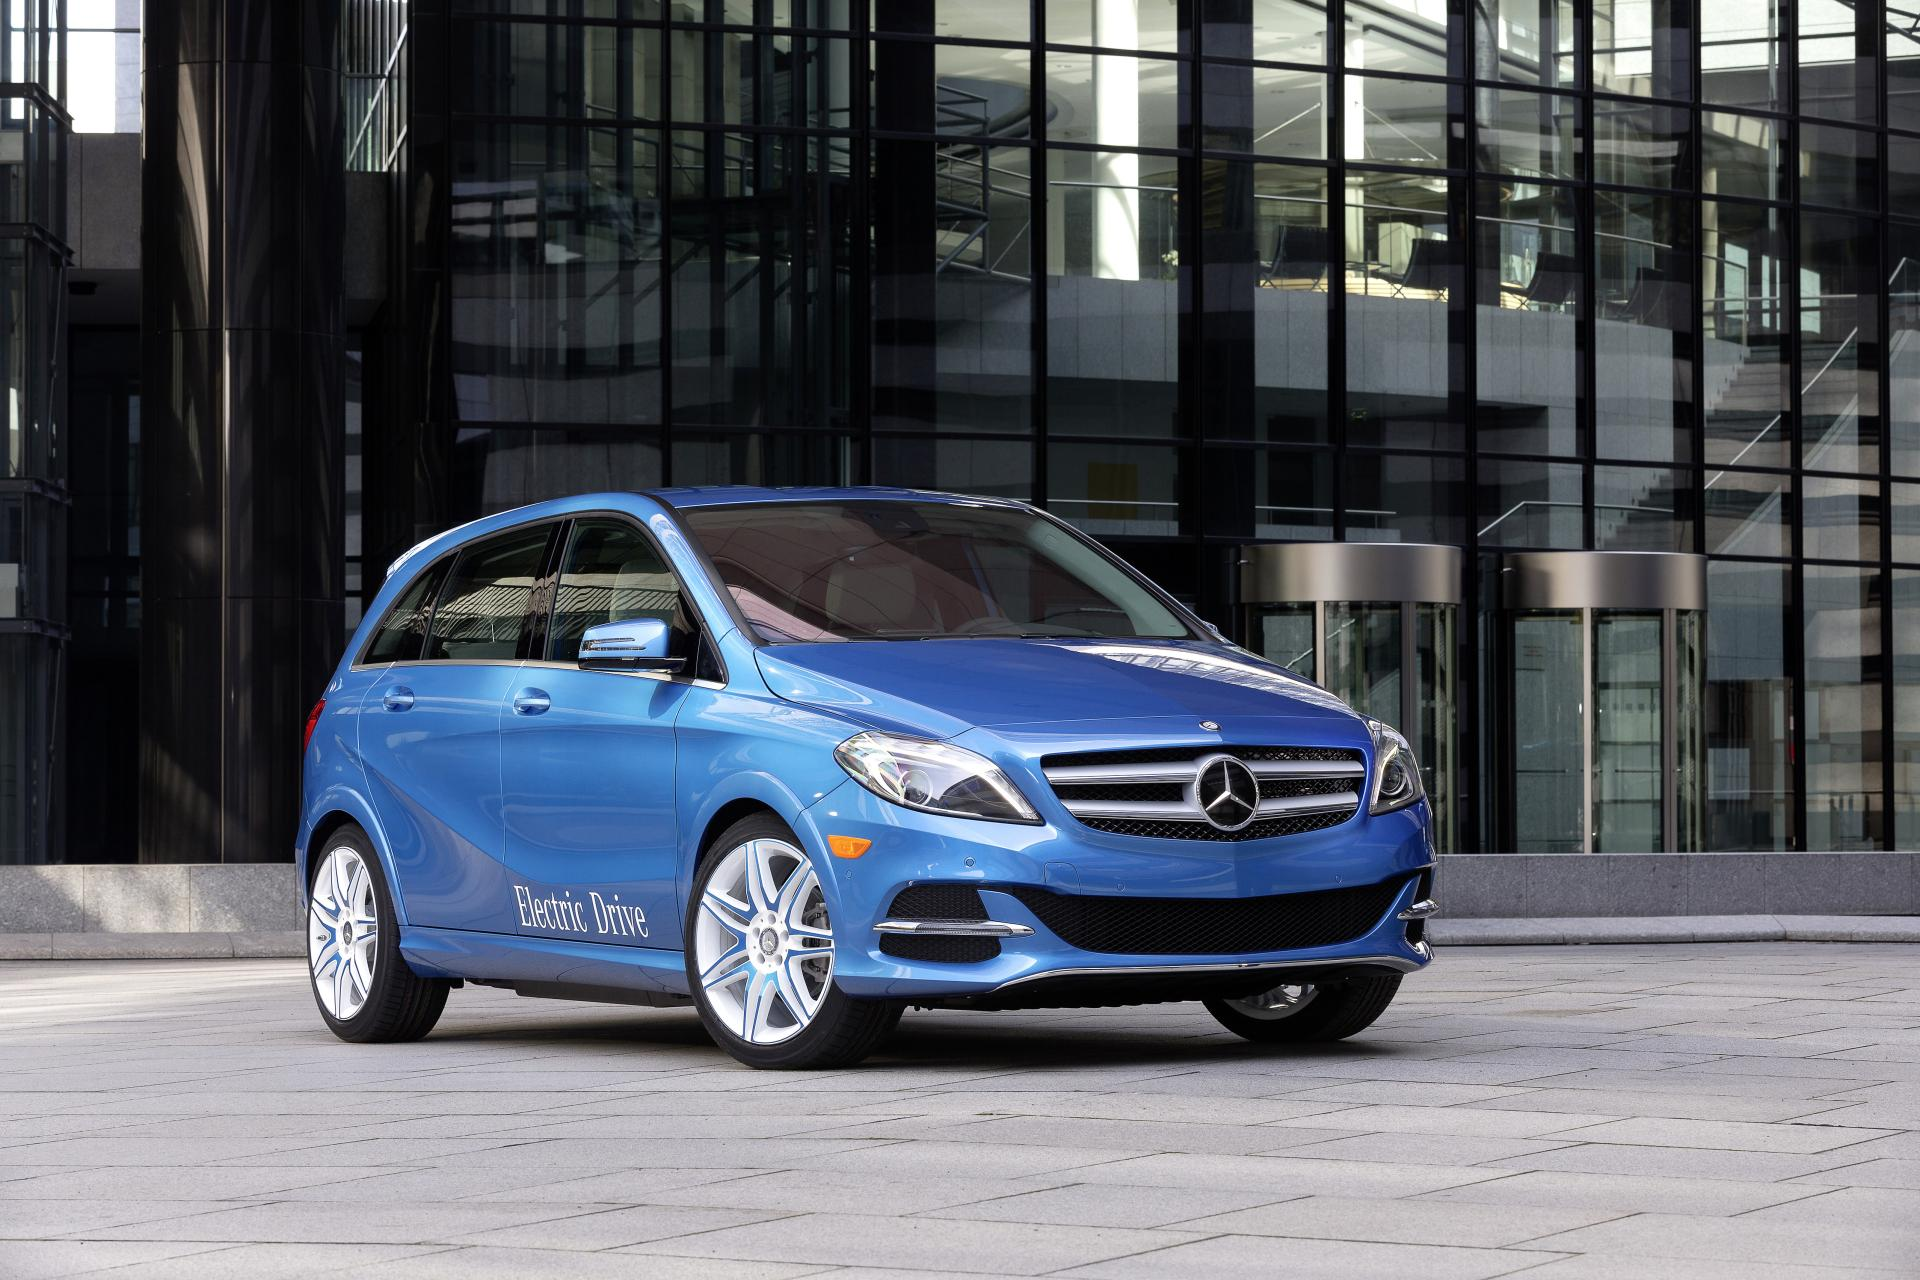 2014 mercedes benz b class electric drive news and information. Black Bedroom Furniture Sets. Home Design Ideas